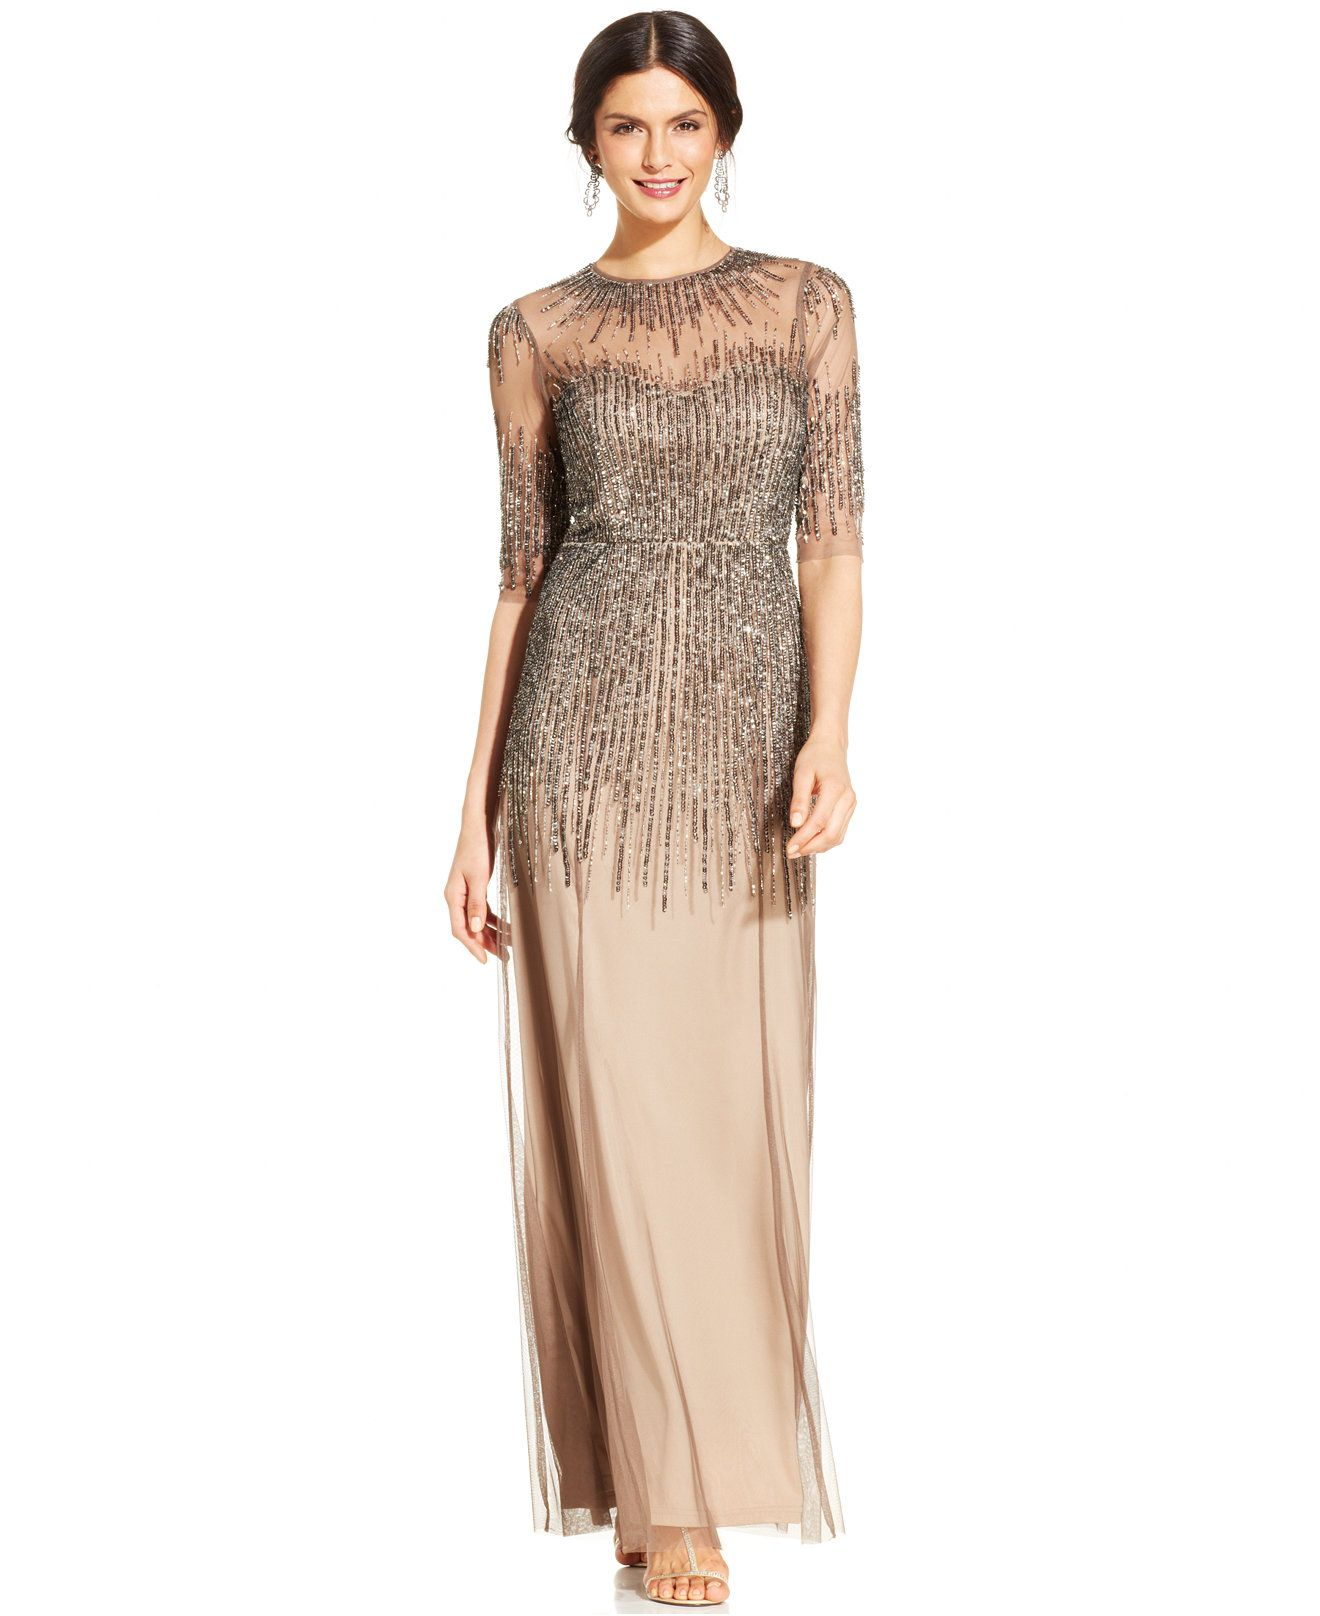 4 Macys MOB dresses ideas  mob dresses, dresses, review dresses